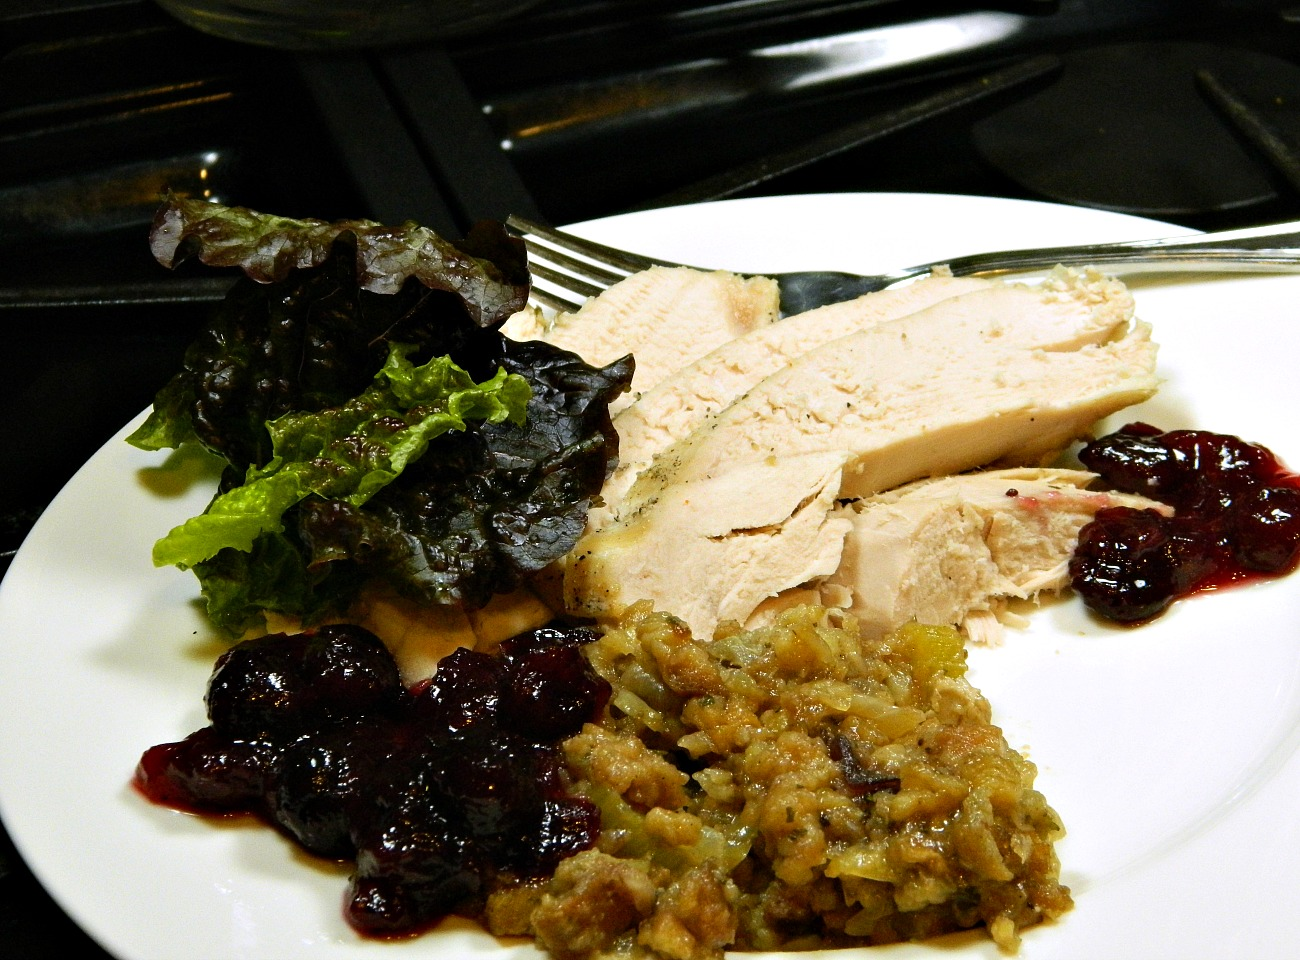 Slow Cooker Turkey Breast With Dressing